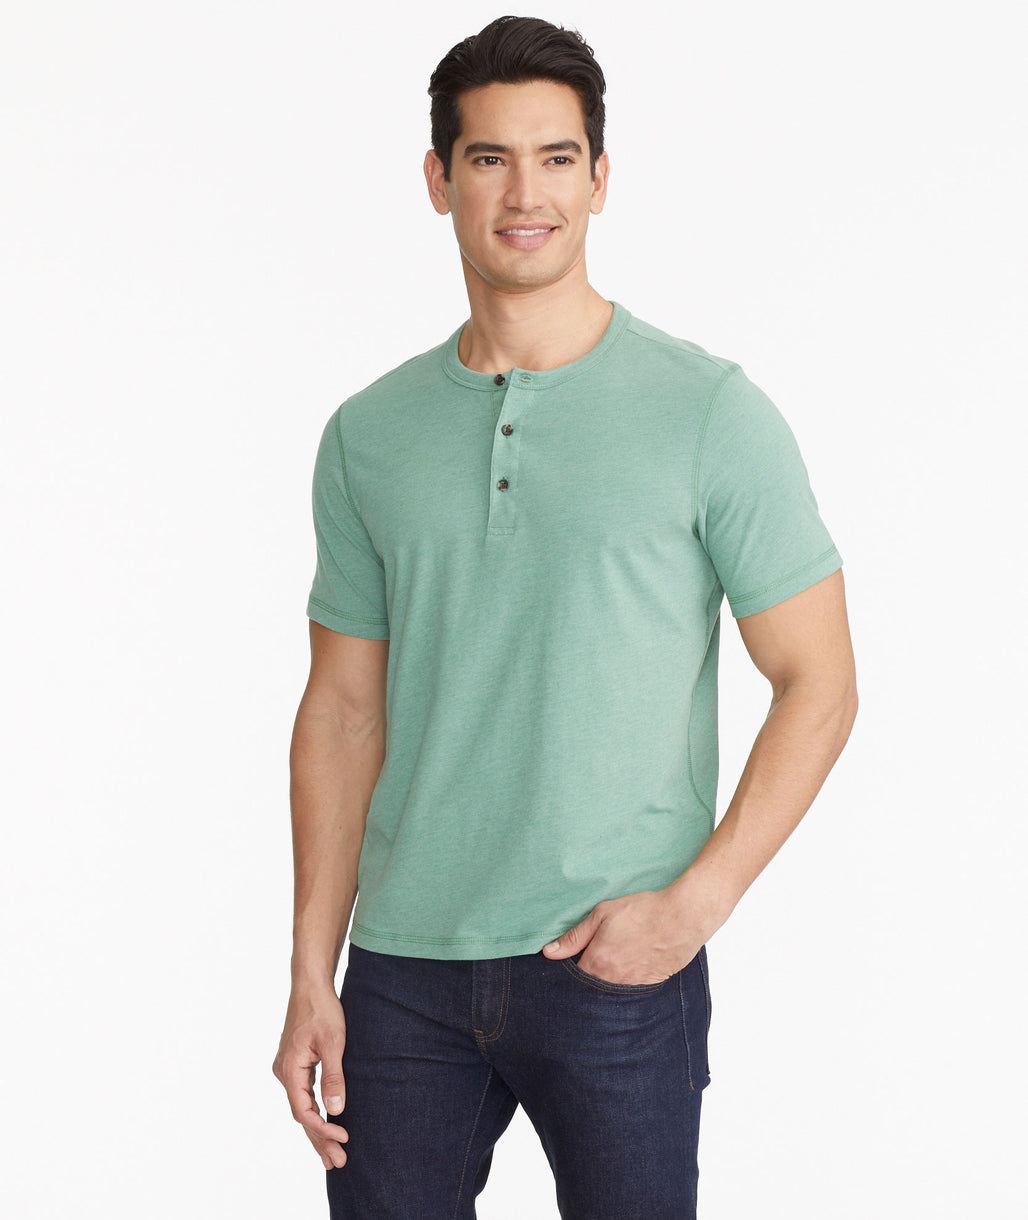 Model wearing a Green Ultrasoft Short-Sleeve Henley